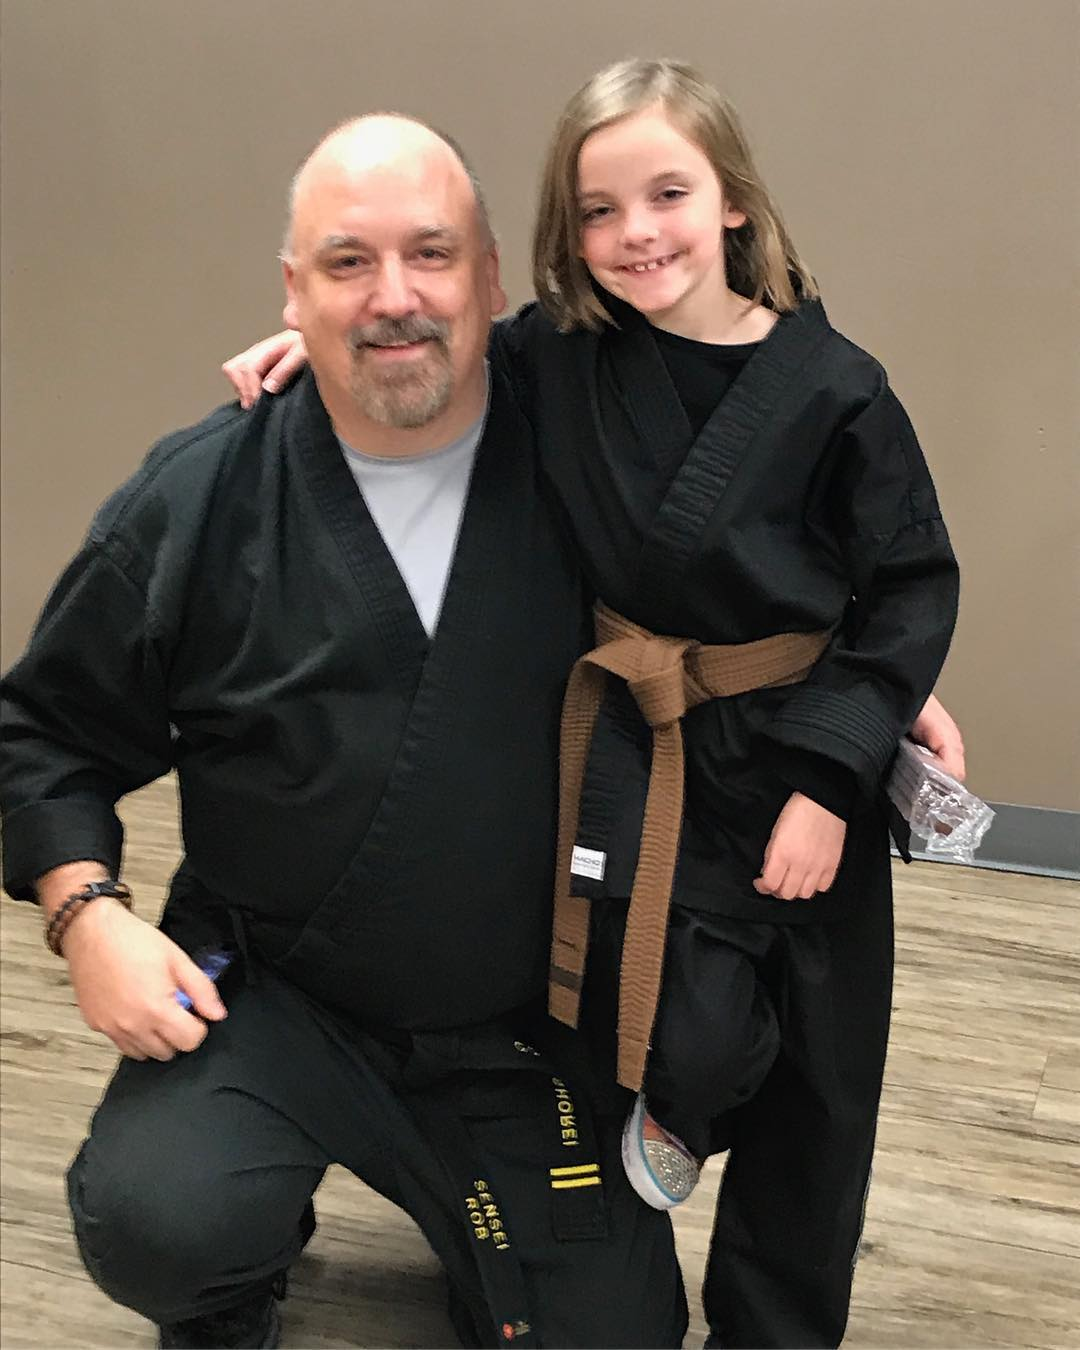 Yeah, I'm bragging… first #Kym tonight for my daughter. #prouddad #martialarts #karate #bushido #gojushorei #brownbelt #daddydaughter #kidskarate #love